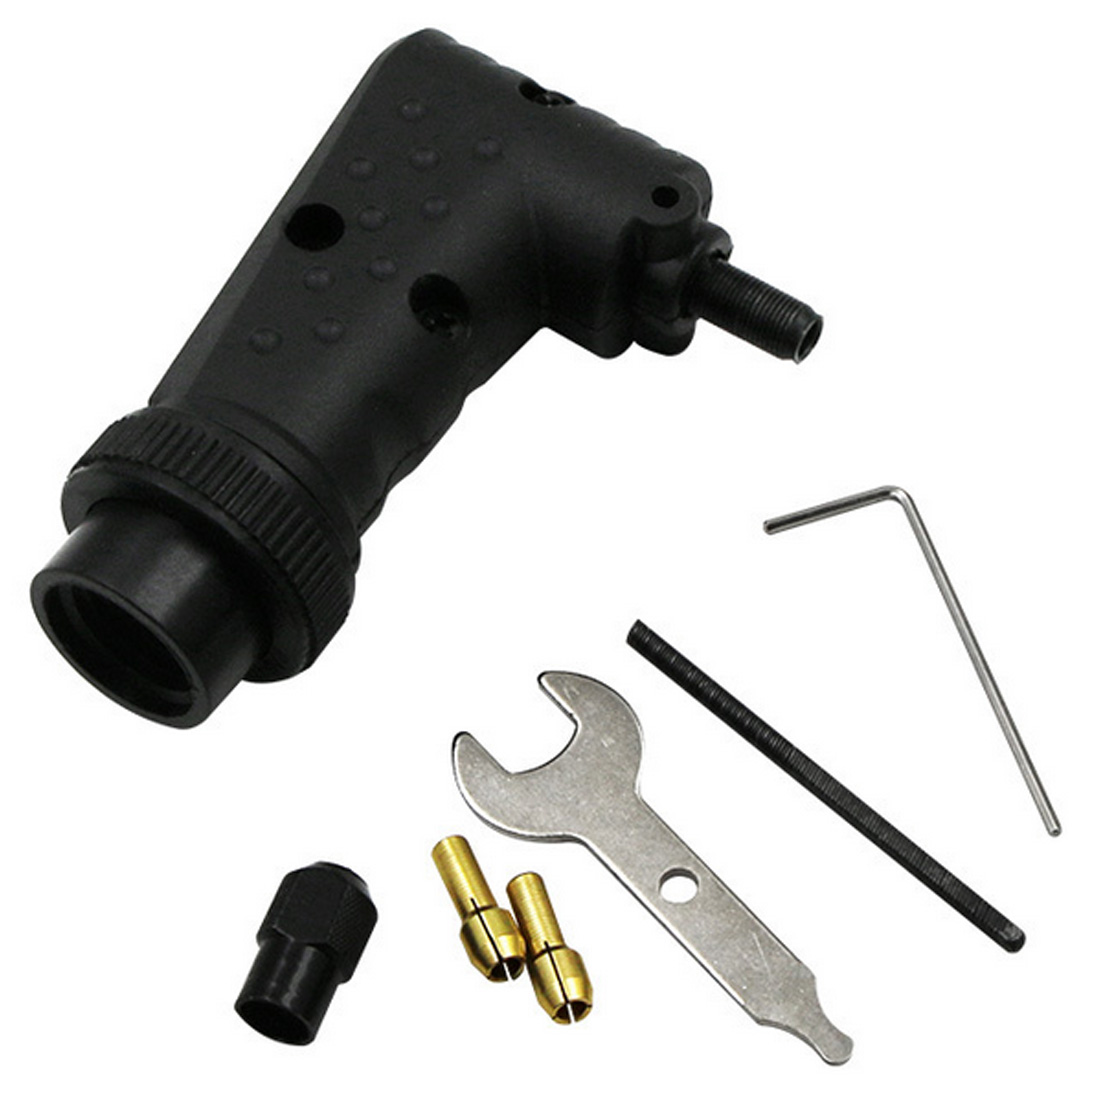 1Set Electric Grinder Kit 90 Right Angle Converter Attachment For Dremel Tool Accessories Rotary Tools 4000 3000 8200 275